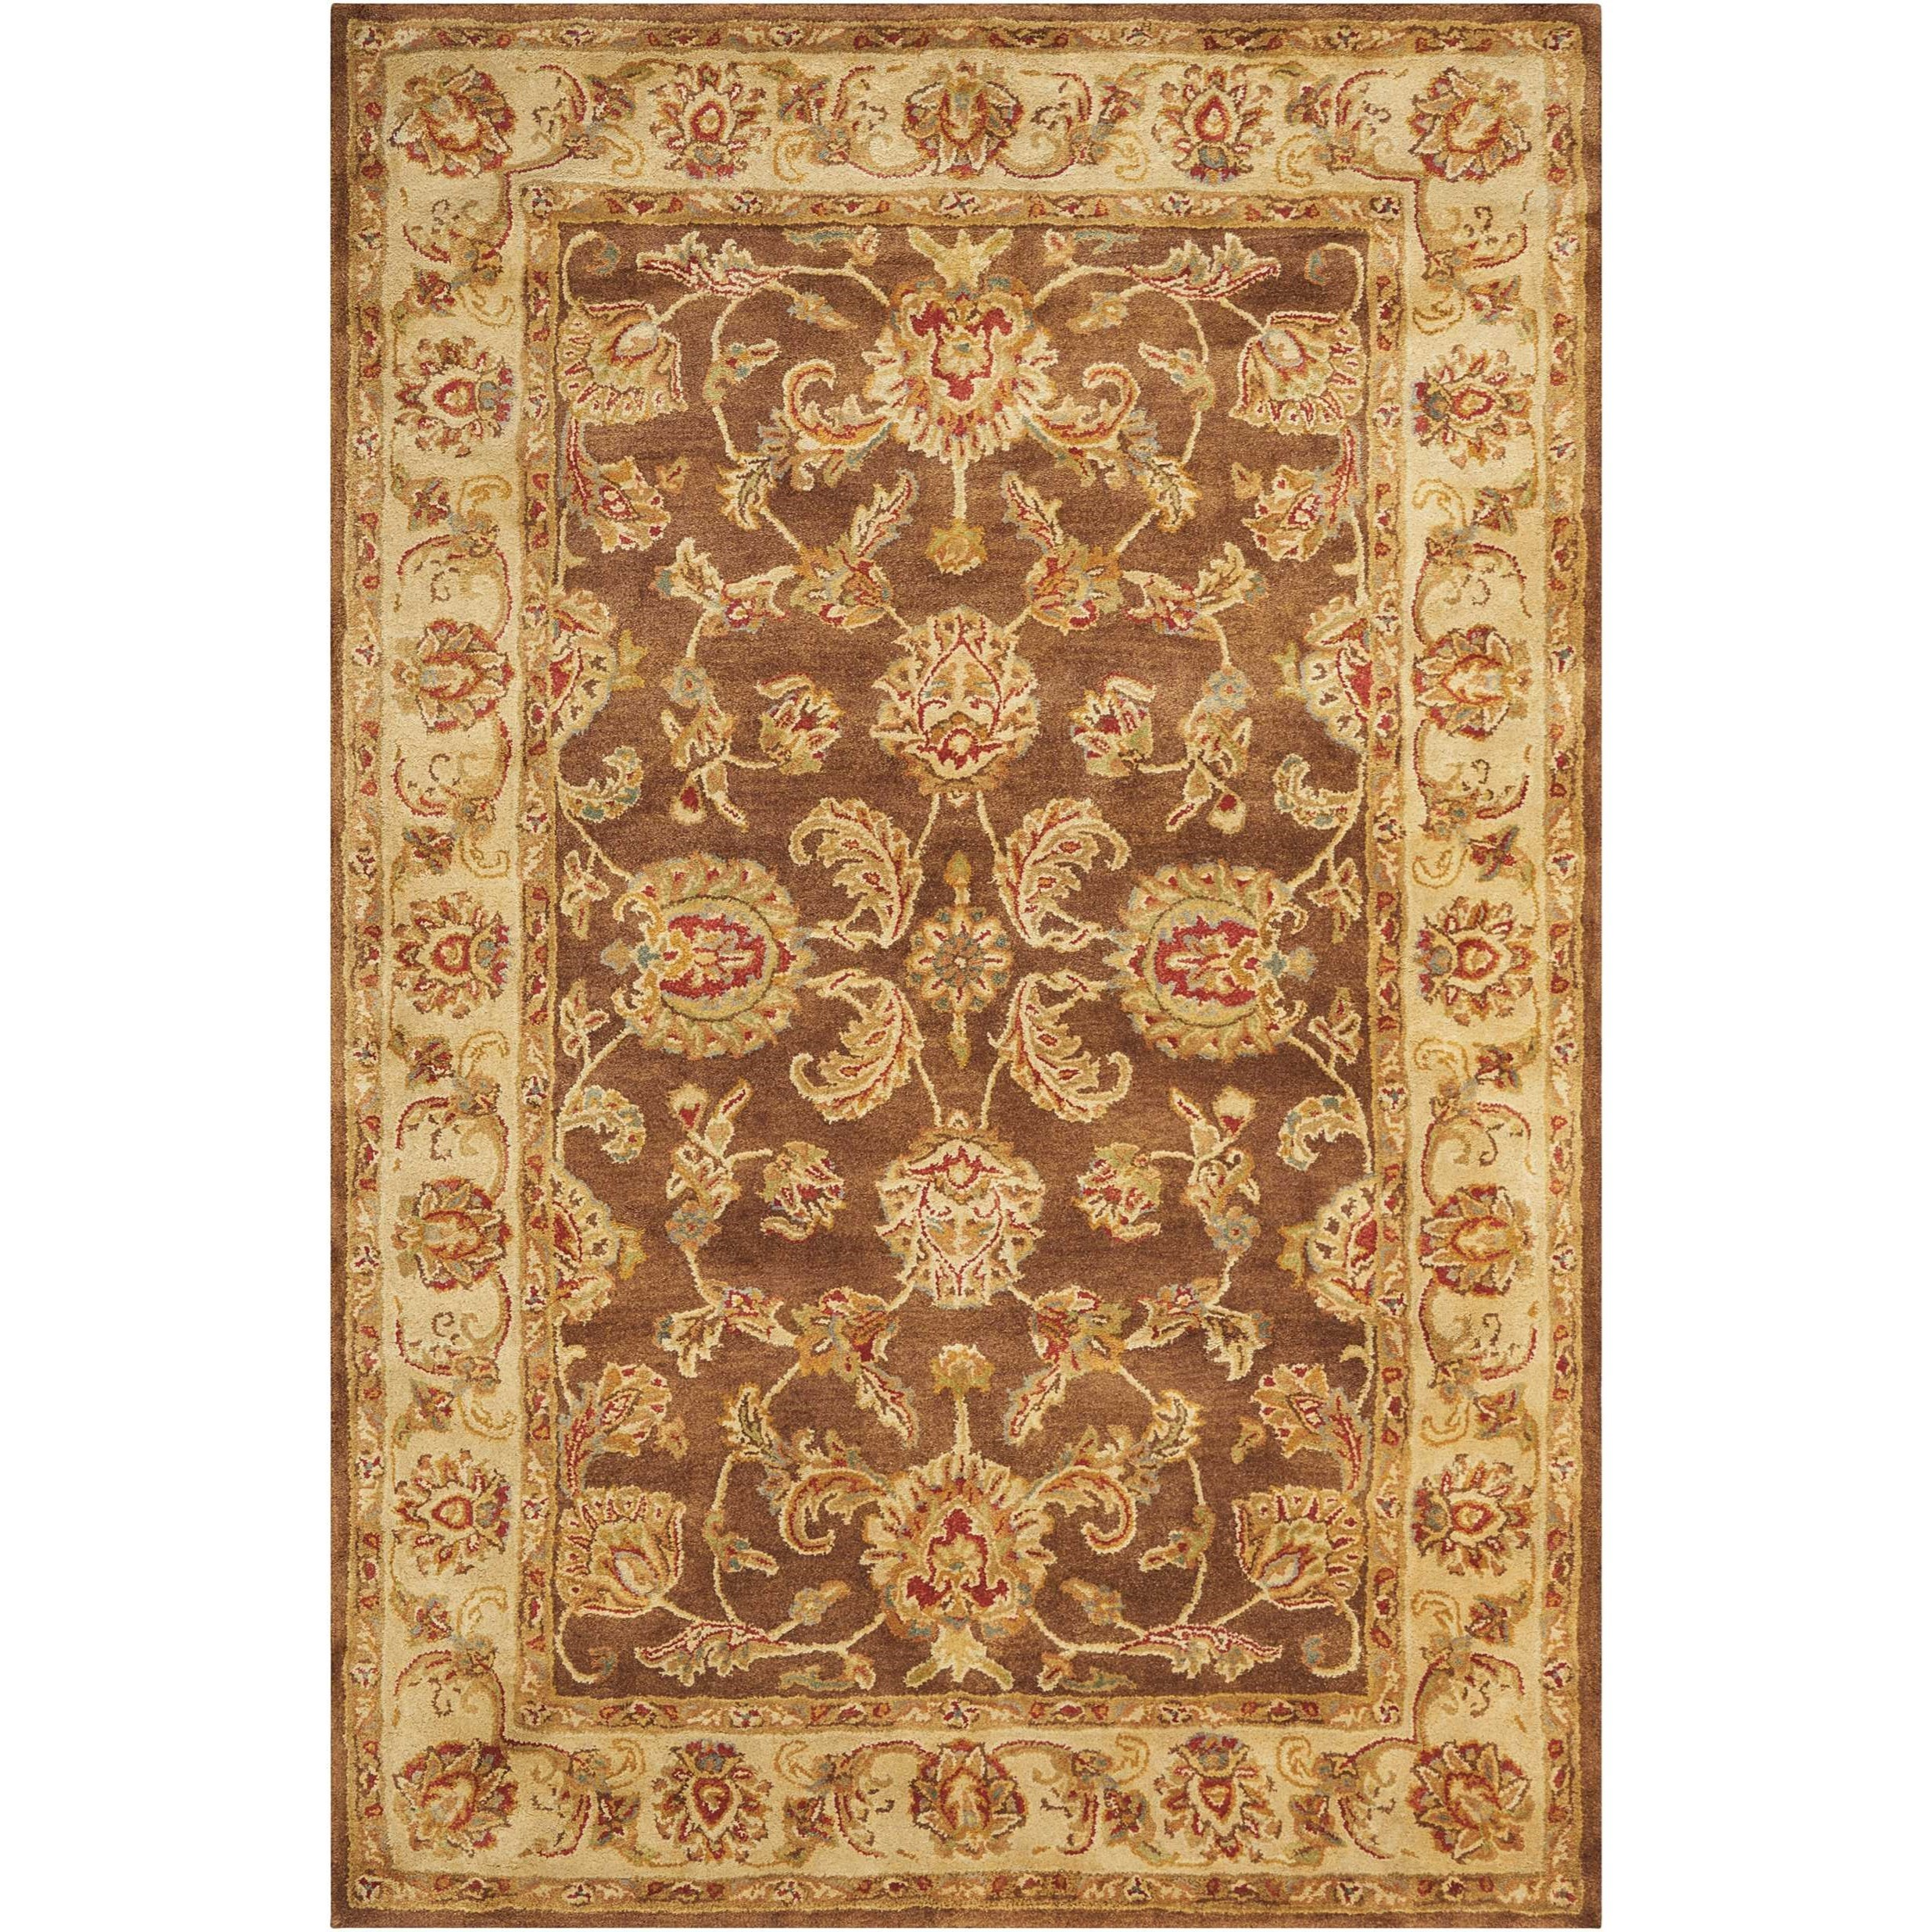 "Jaipur 3'9"" x 5'9"" Brown Rectangle Rug by Nourison at Home Collections Furniture"